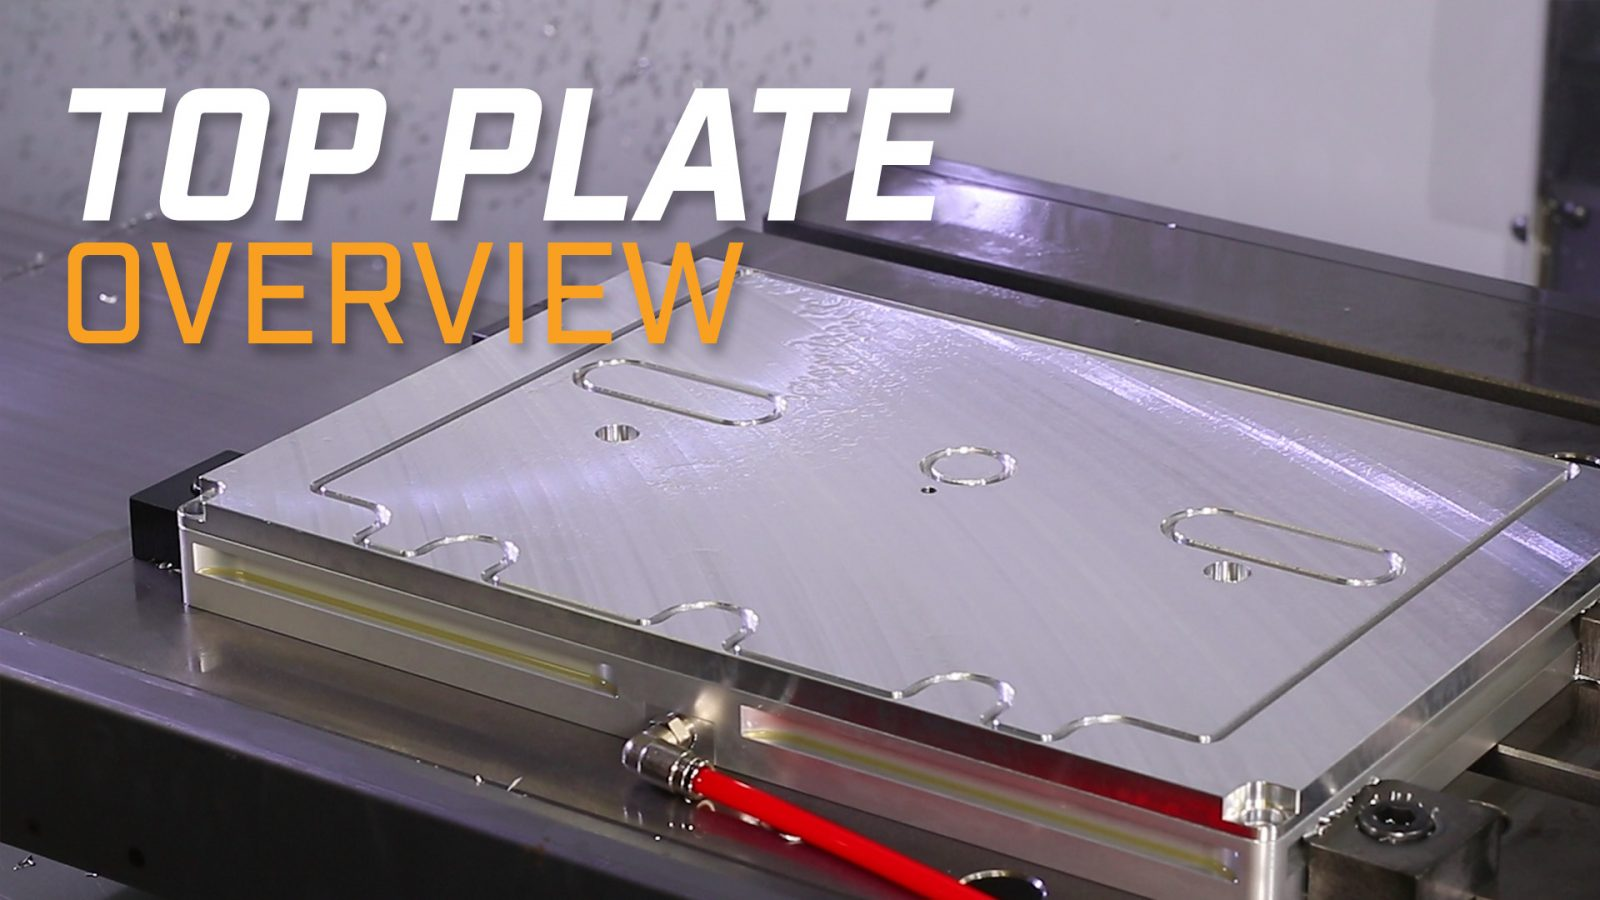 Top Plate Overview